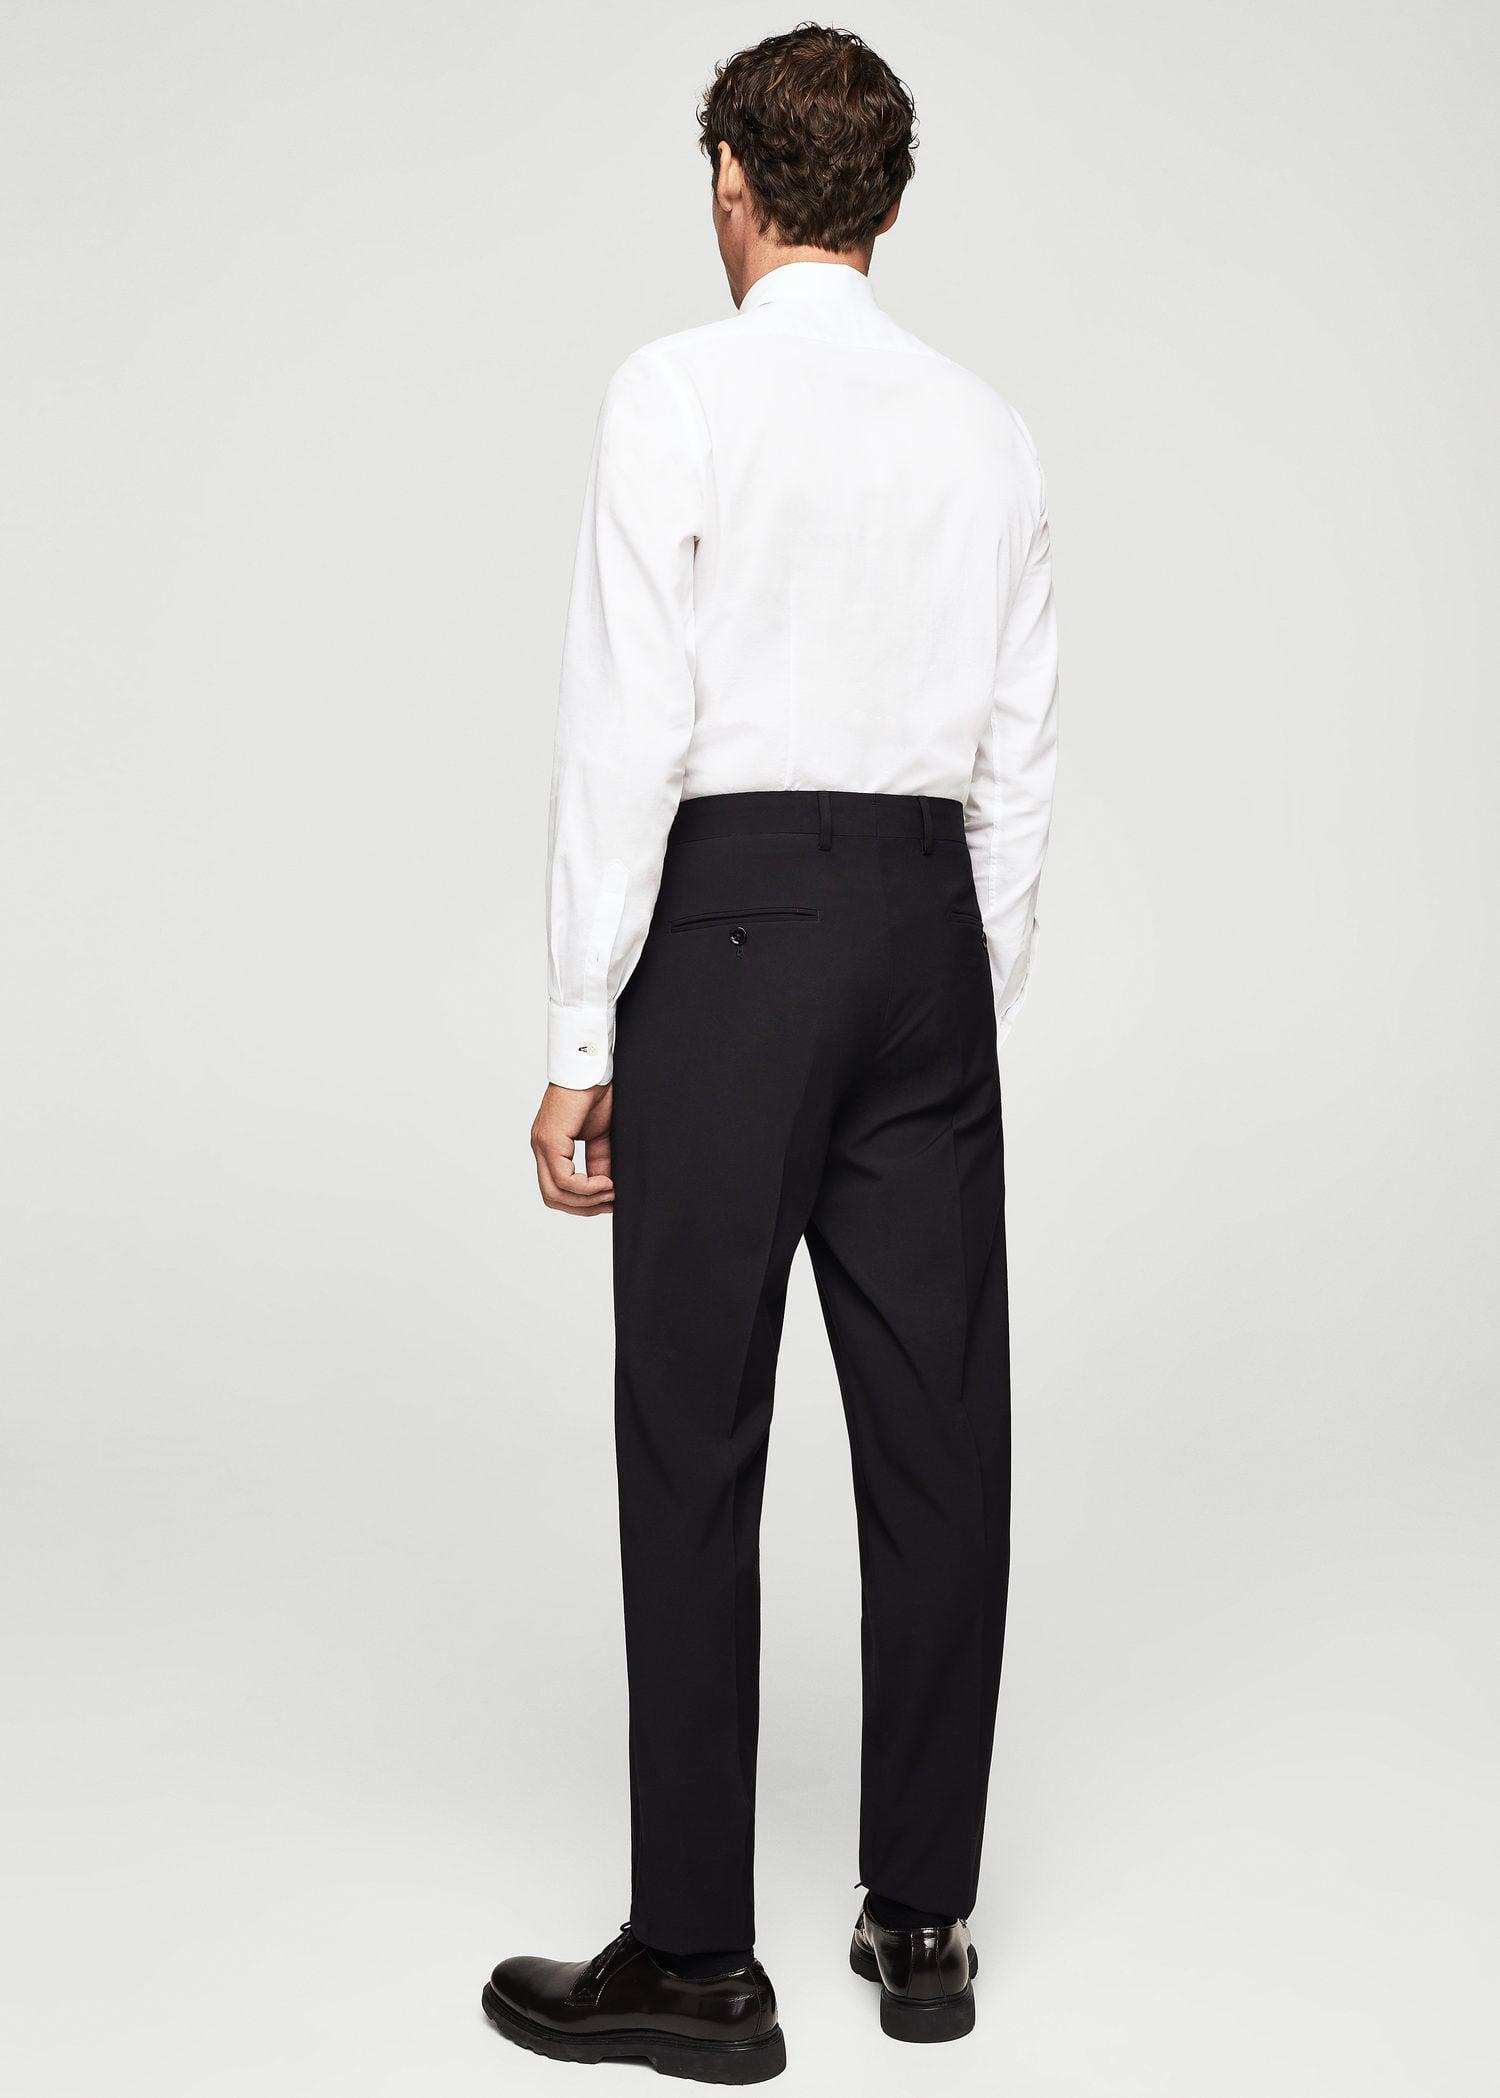 Mango Synthetic Trousers in Black for Men